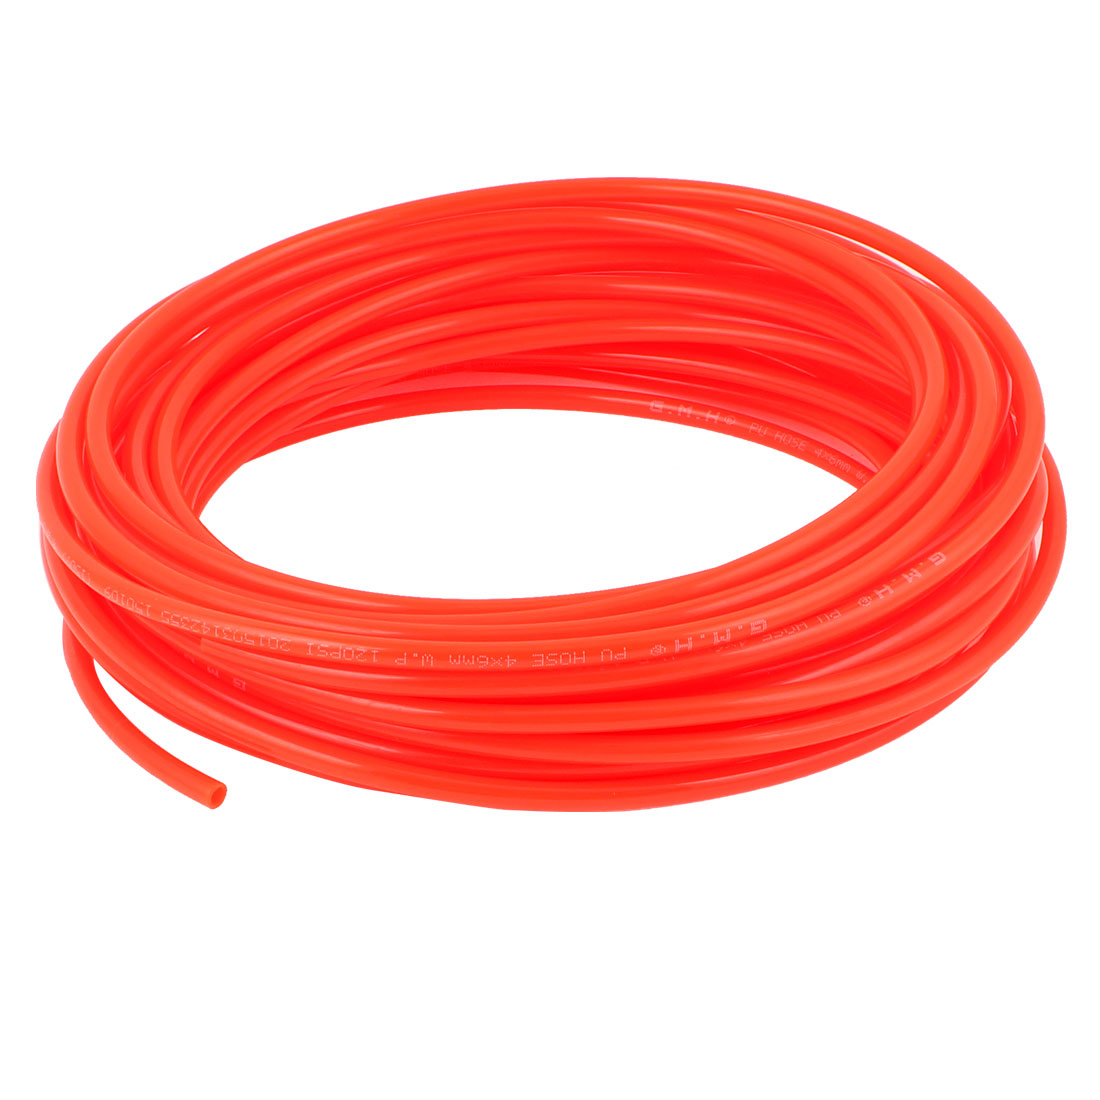 6mm x 4mm Fleaxible PU Tube Pneumatic Polyurethane Hose 15M Long Orange